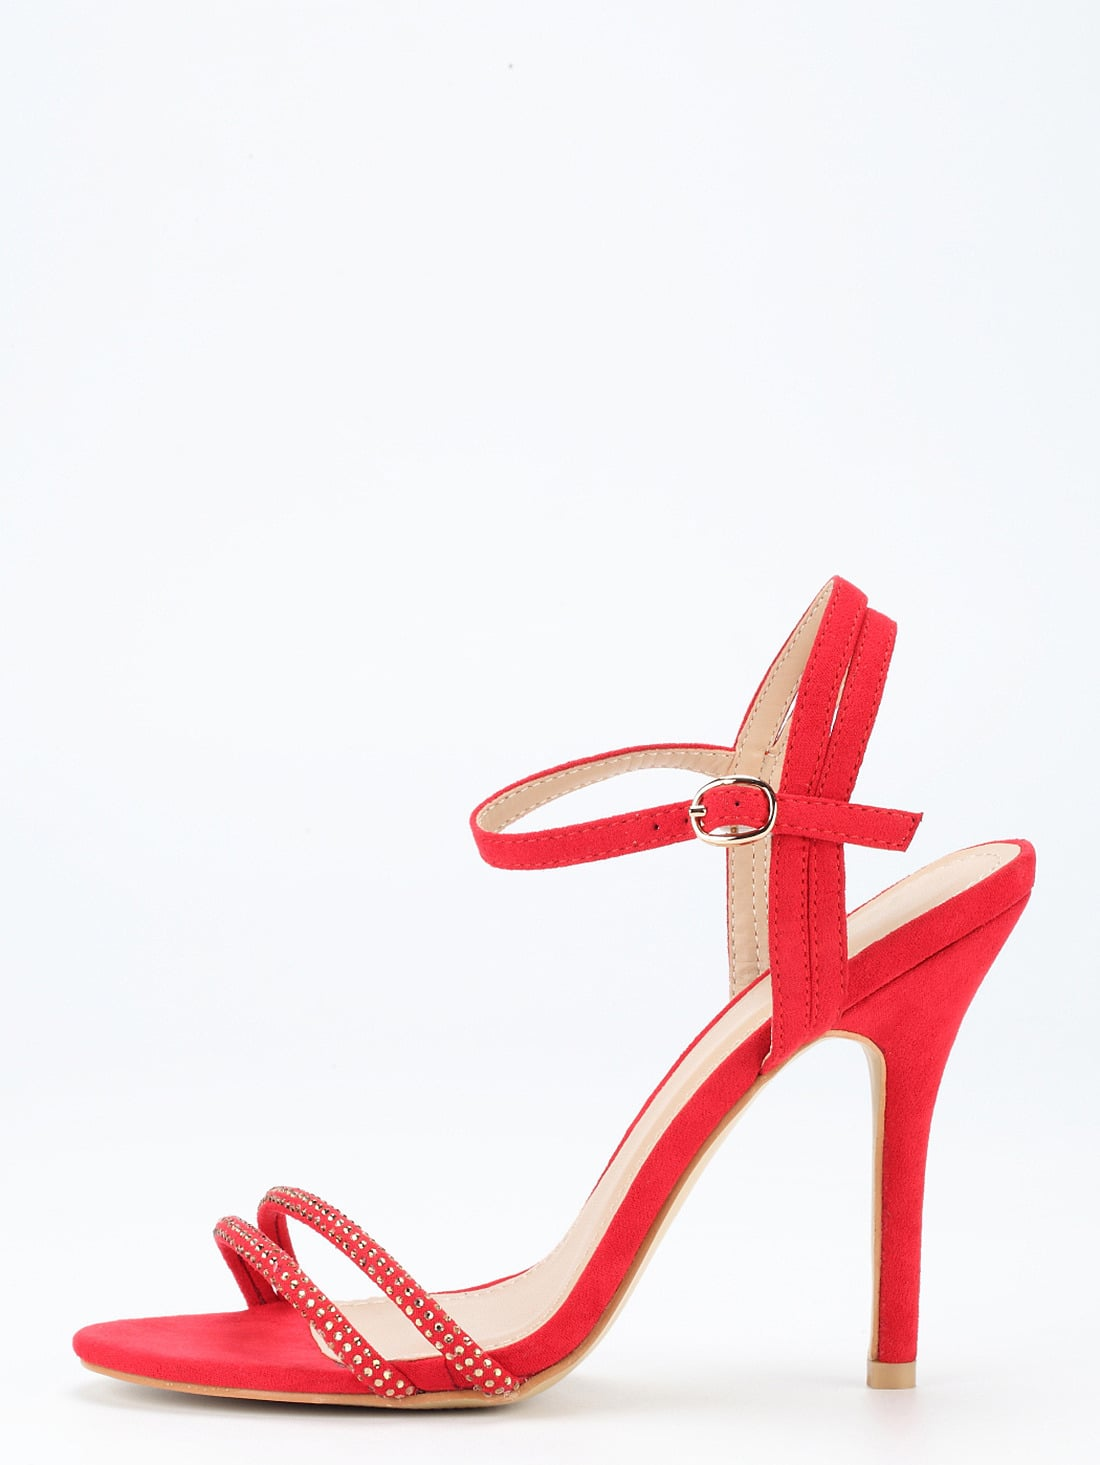 Red Ankle Strap Heeled Sandals shoes16040836